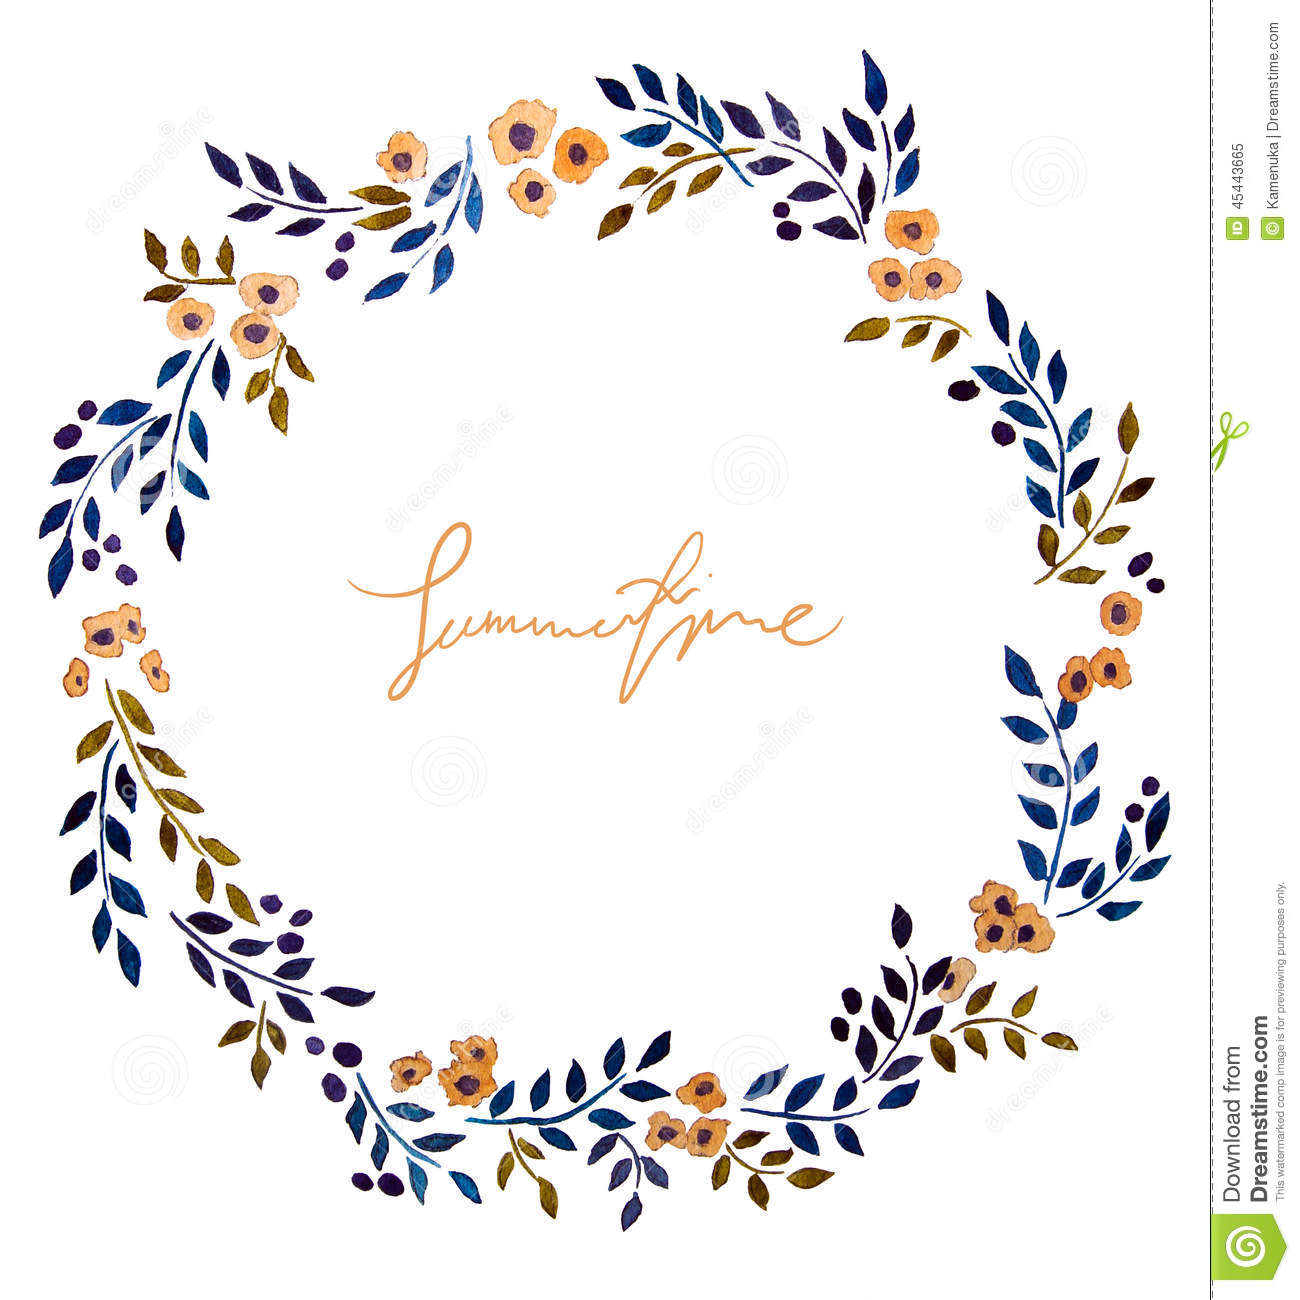 Hand Painted Watercolor Wreath. Stock Illustration - Image: 45443665